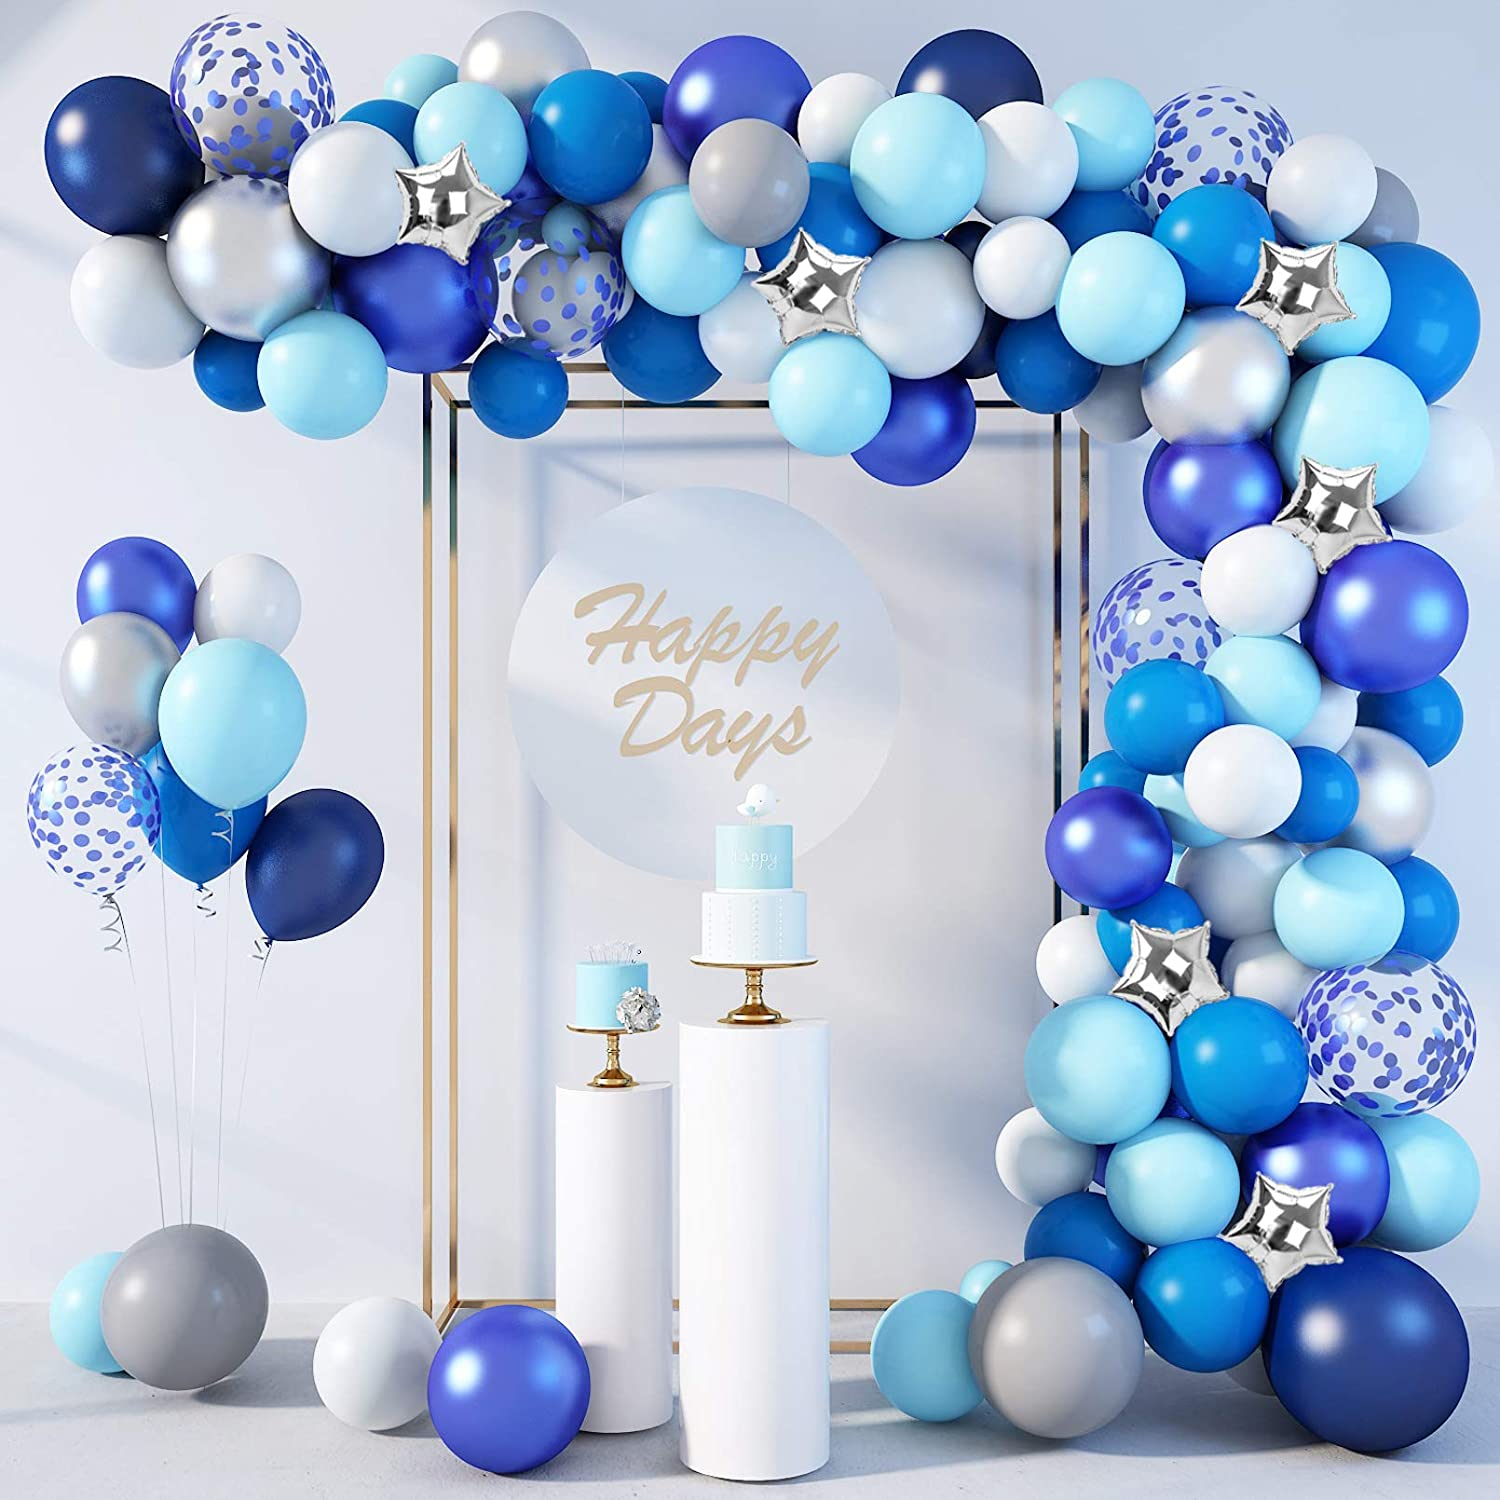 154 Pcs Blue Balloons Garland Arch Kit Navy Blue Confetti Star Silver Metallic Balloons for Birthday Baby Shower Wedding Party